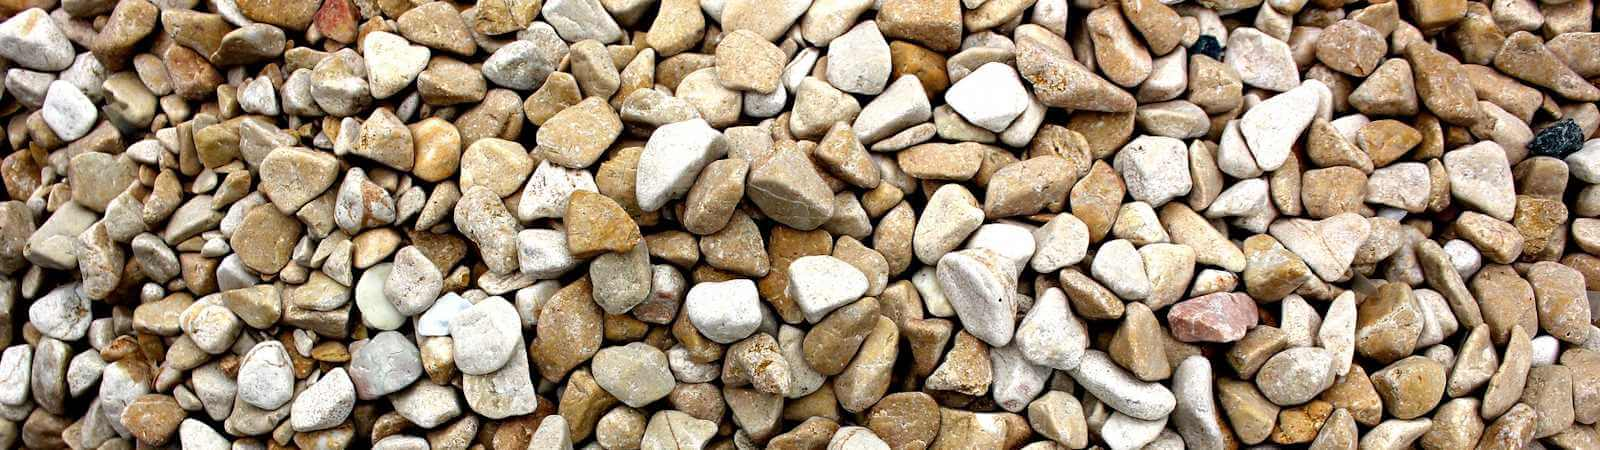 Are you looking for decorative stone supplies?